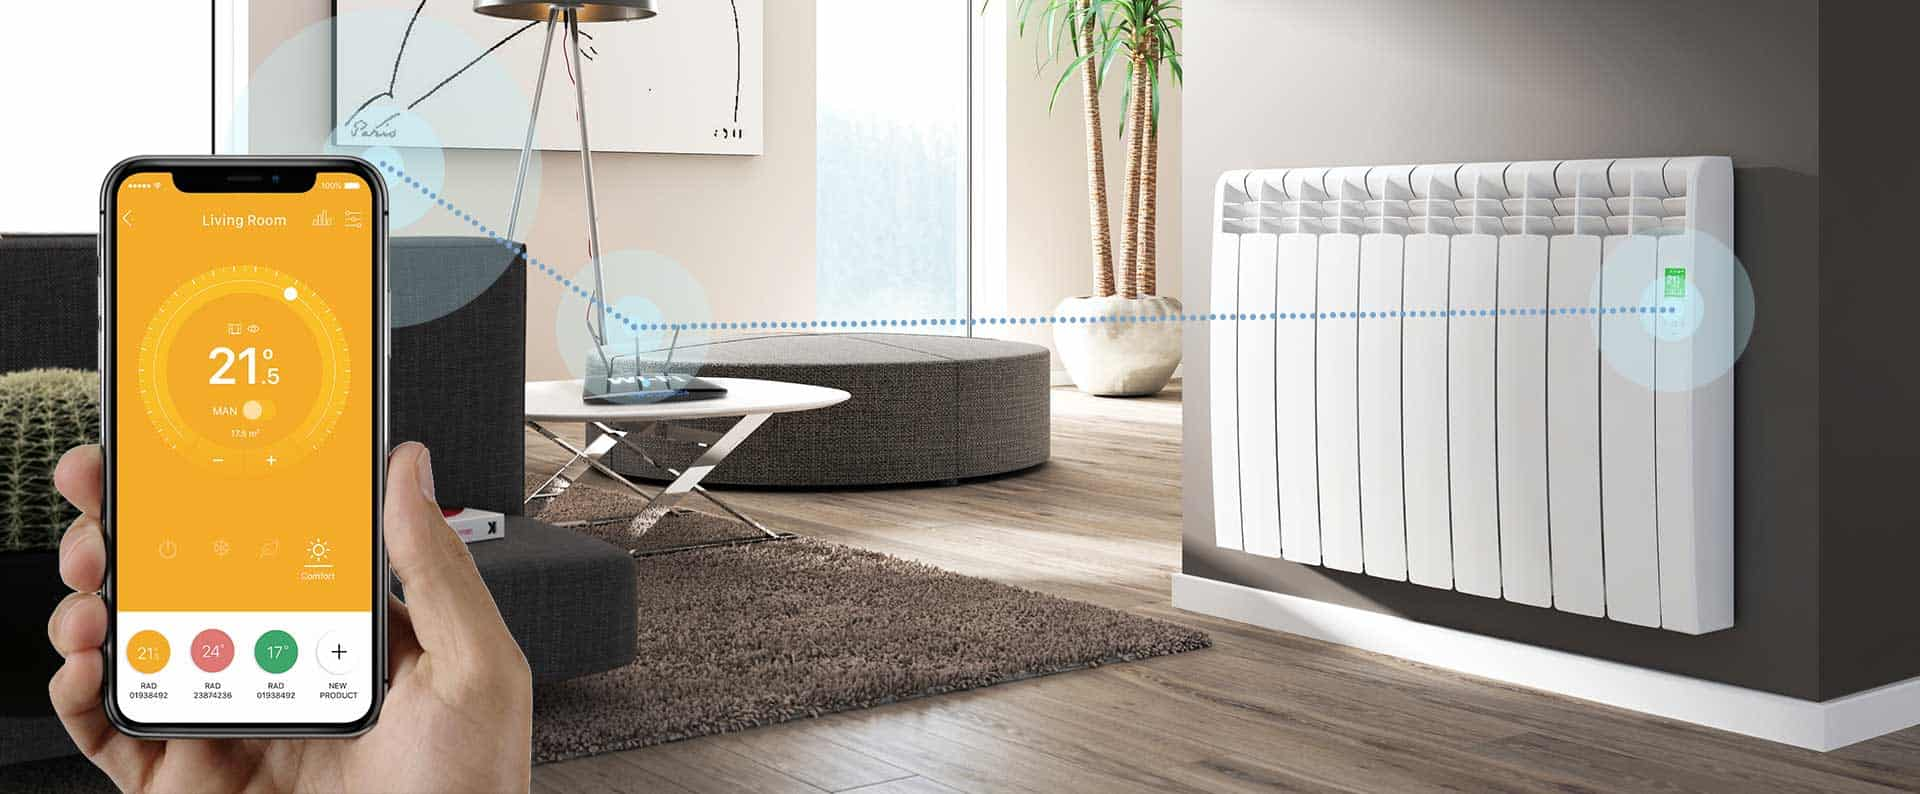 Rointe Connect app on smartphone controlling D Series radiator in living room via WiFi router